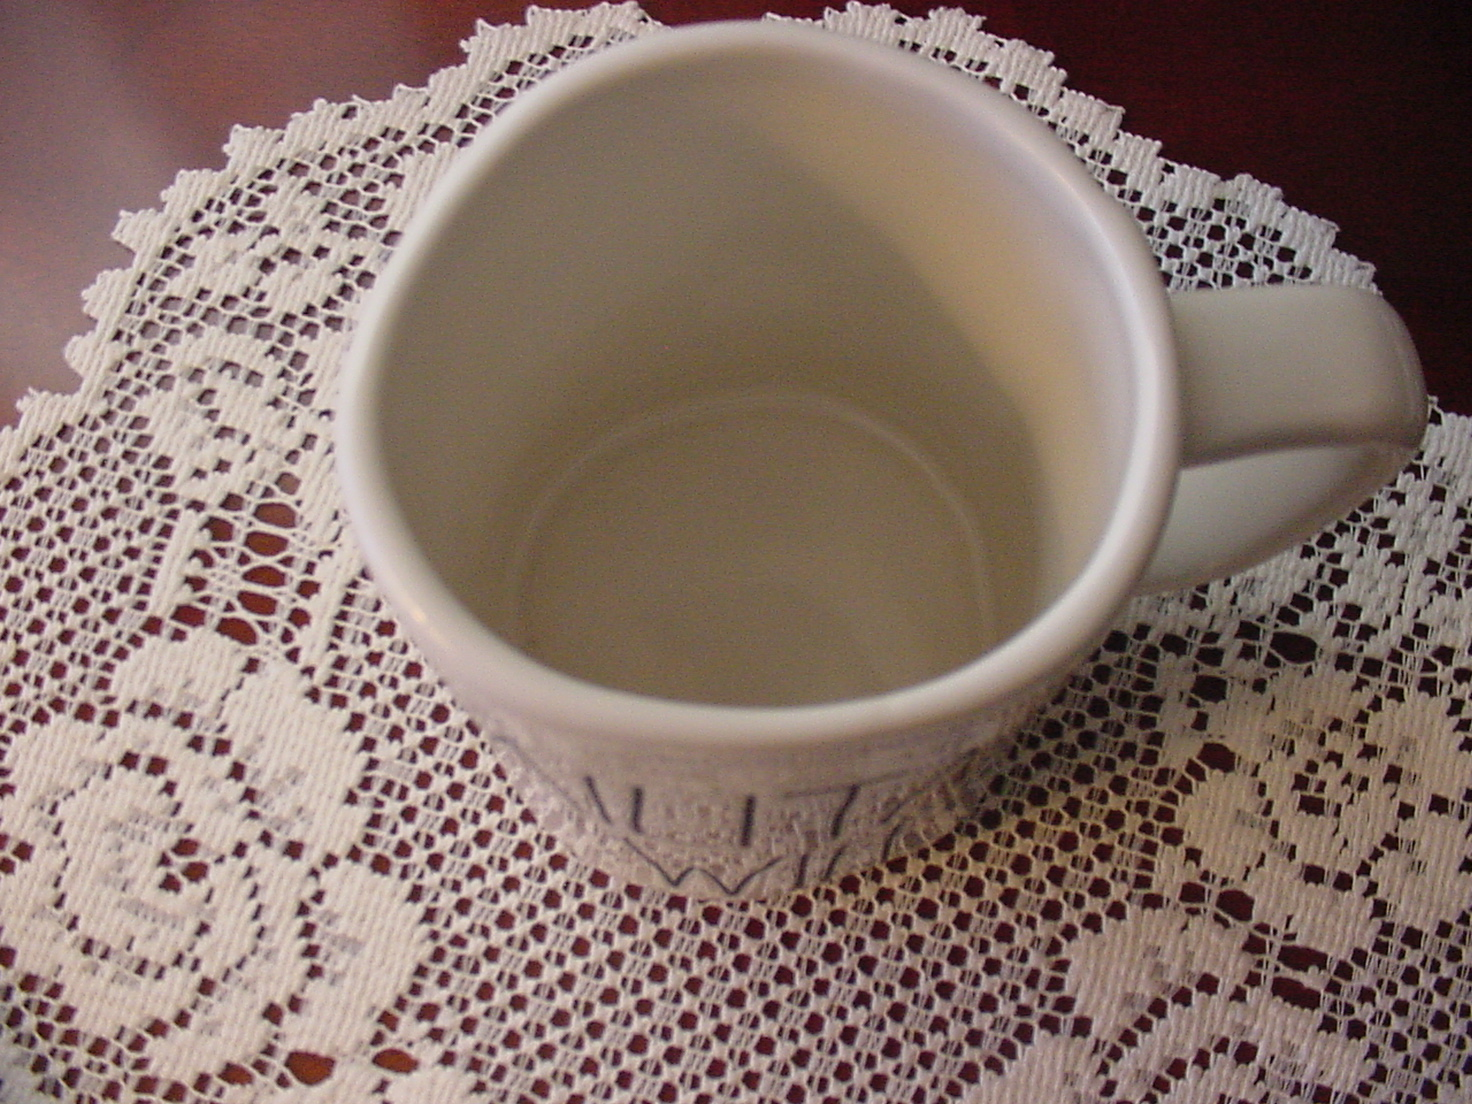 Rae Dunn MILITARY WIFE Rustic Mug, Ivory with Black Letters, New!